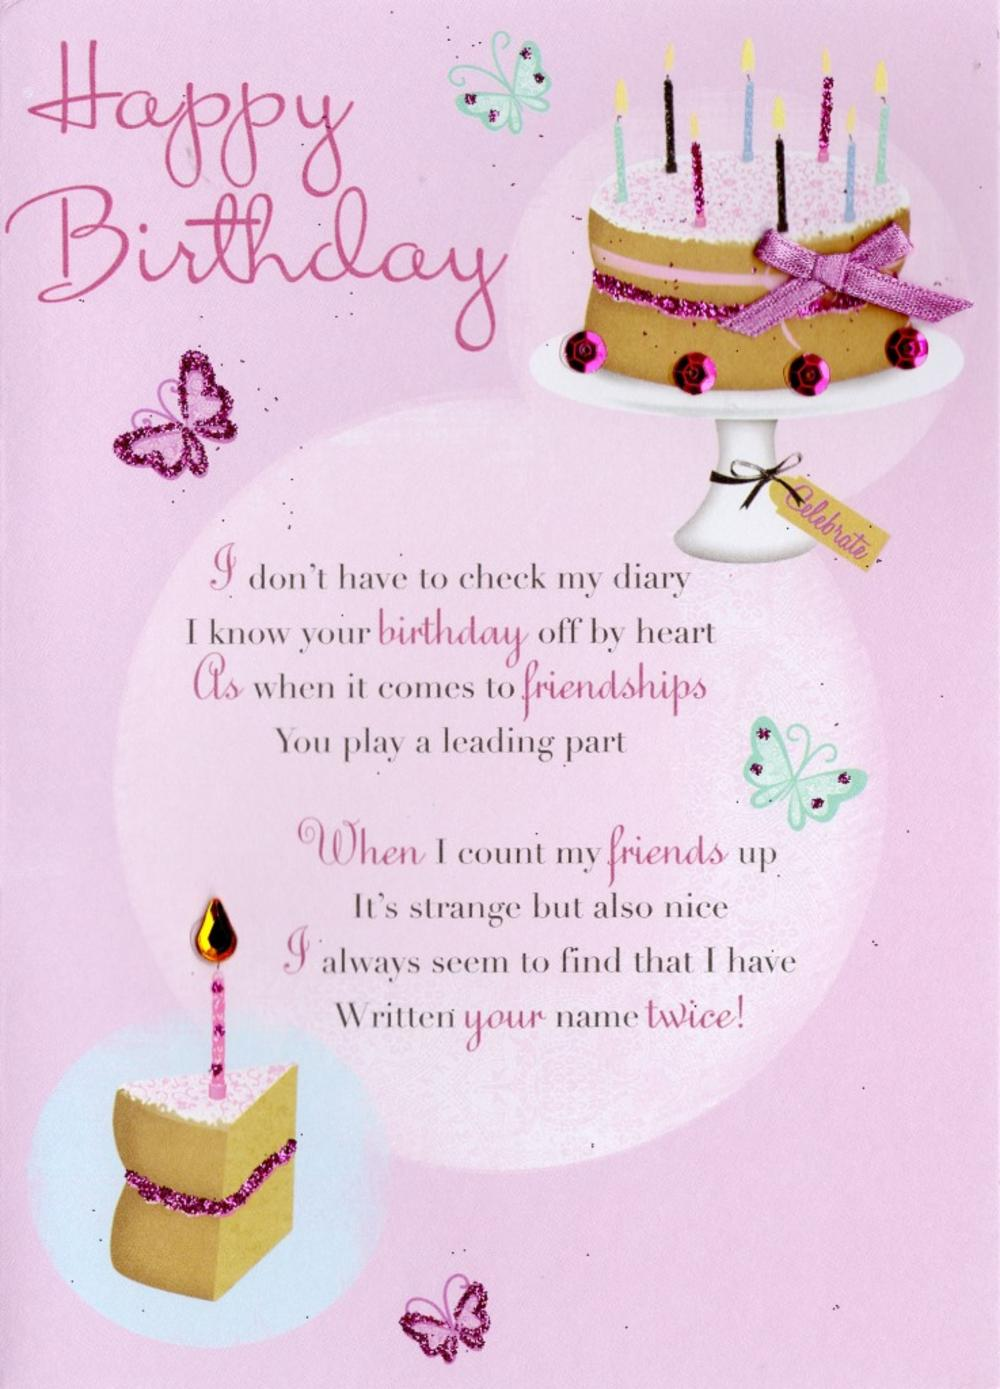 Friend happy birthday greeting card cards love kates friend happy birthday greeting card bookmarktalkfo